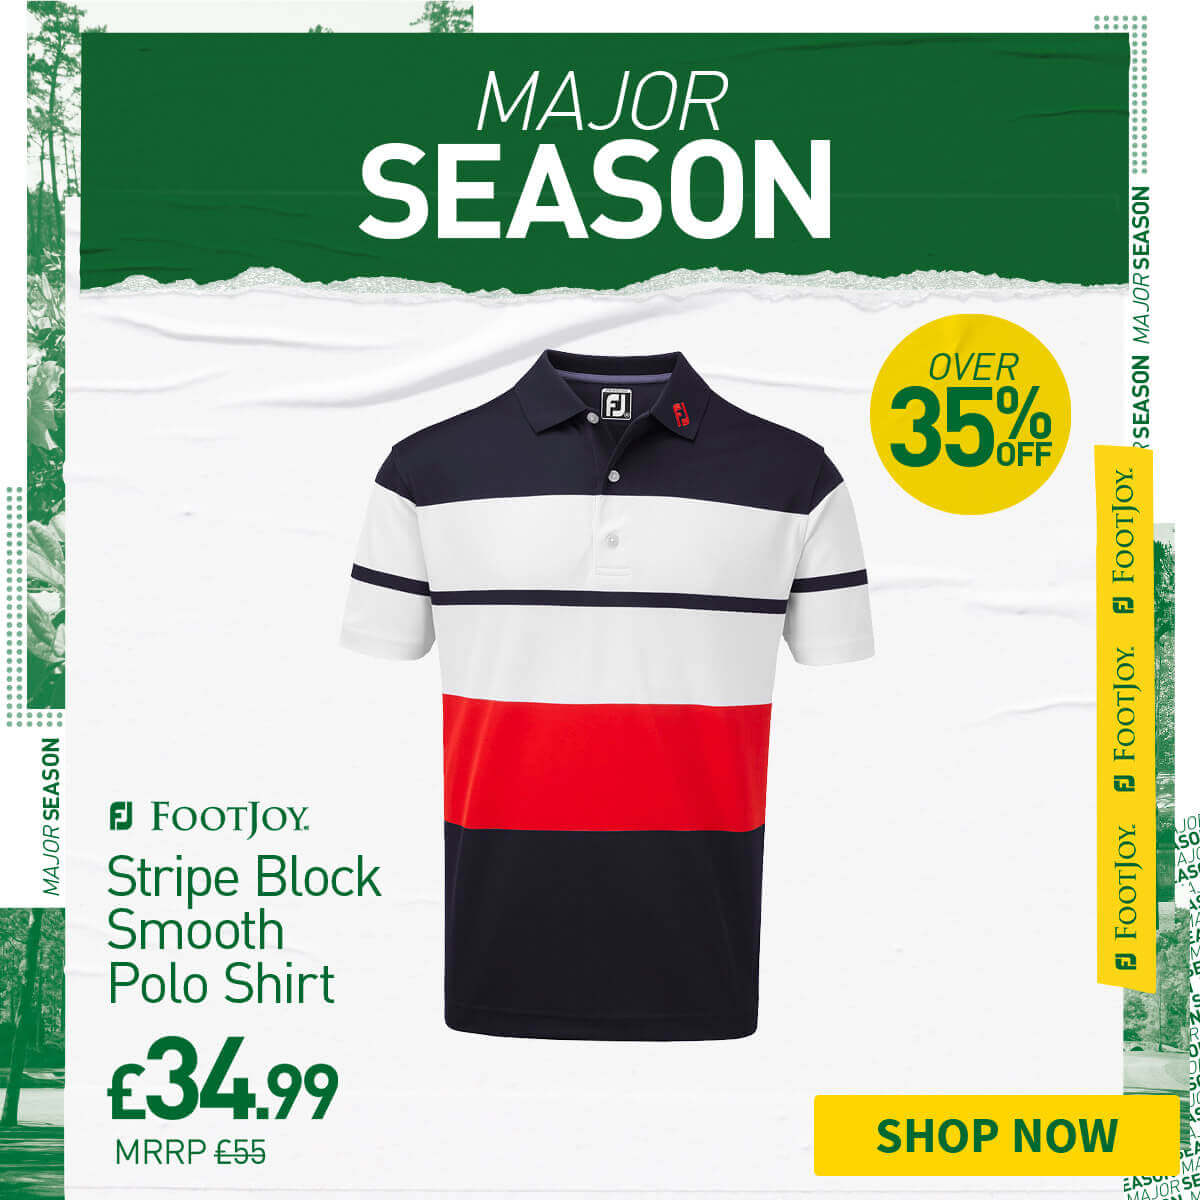 FOOTJOY COLOURBLOCK SMOOTH PIQUE POLO - OVER 35% OFF